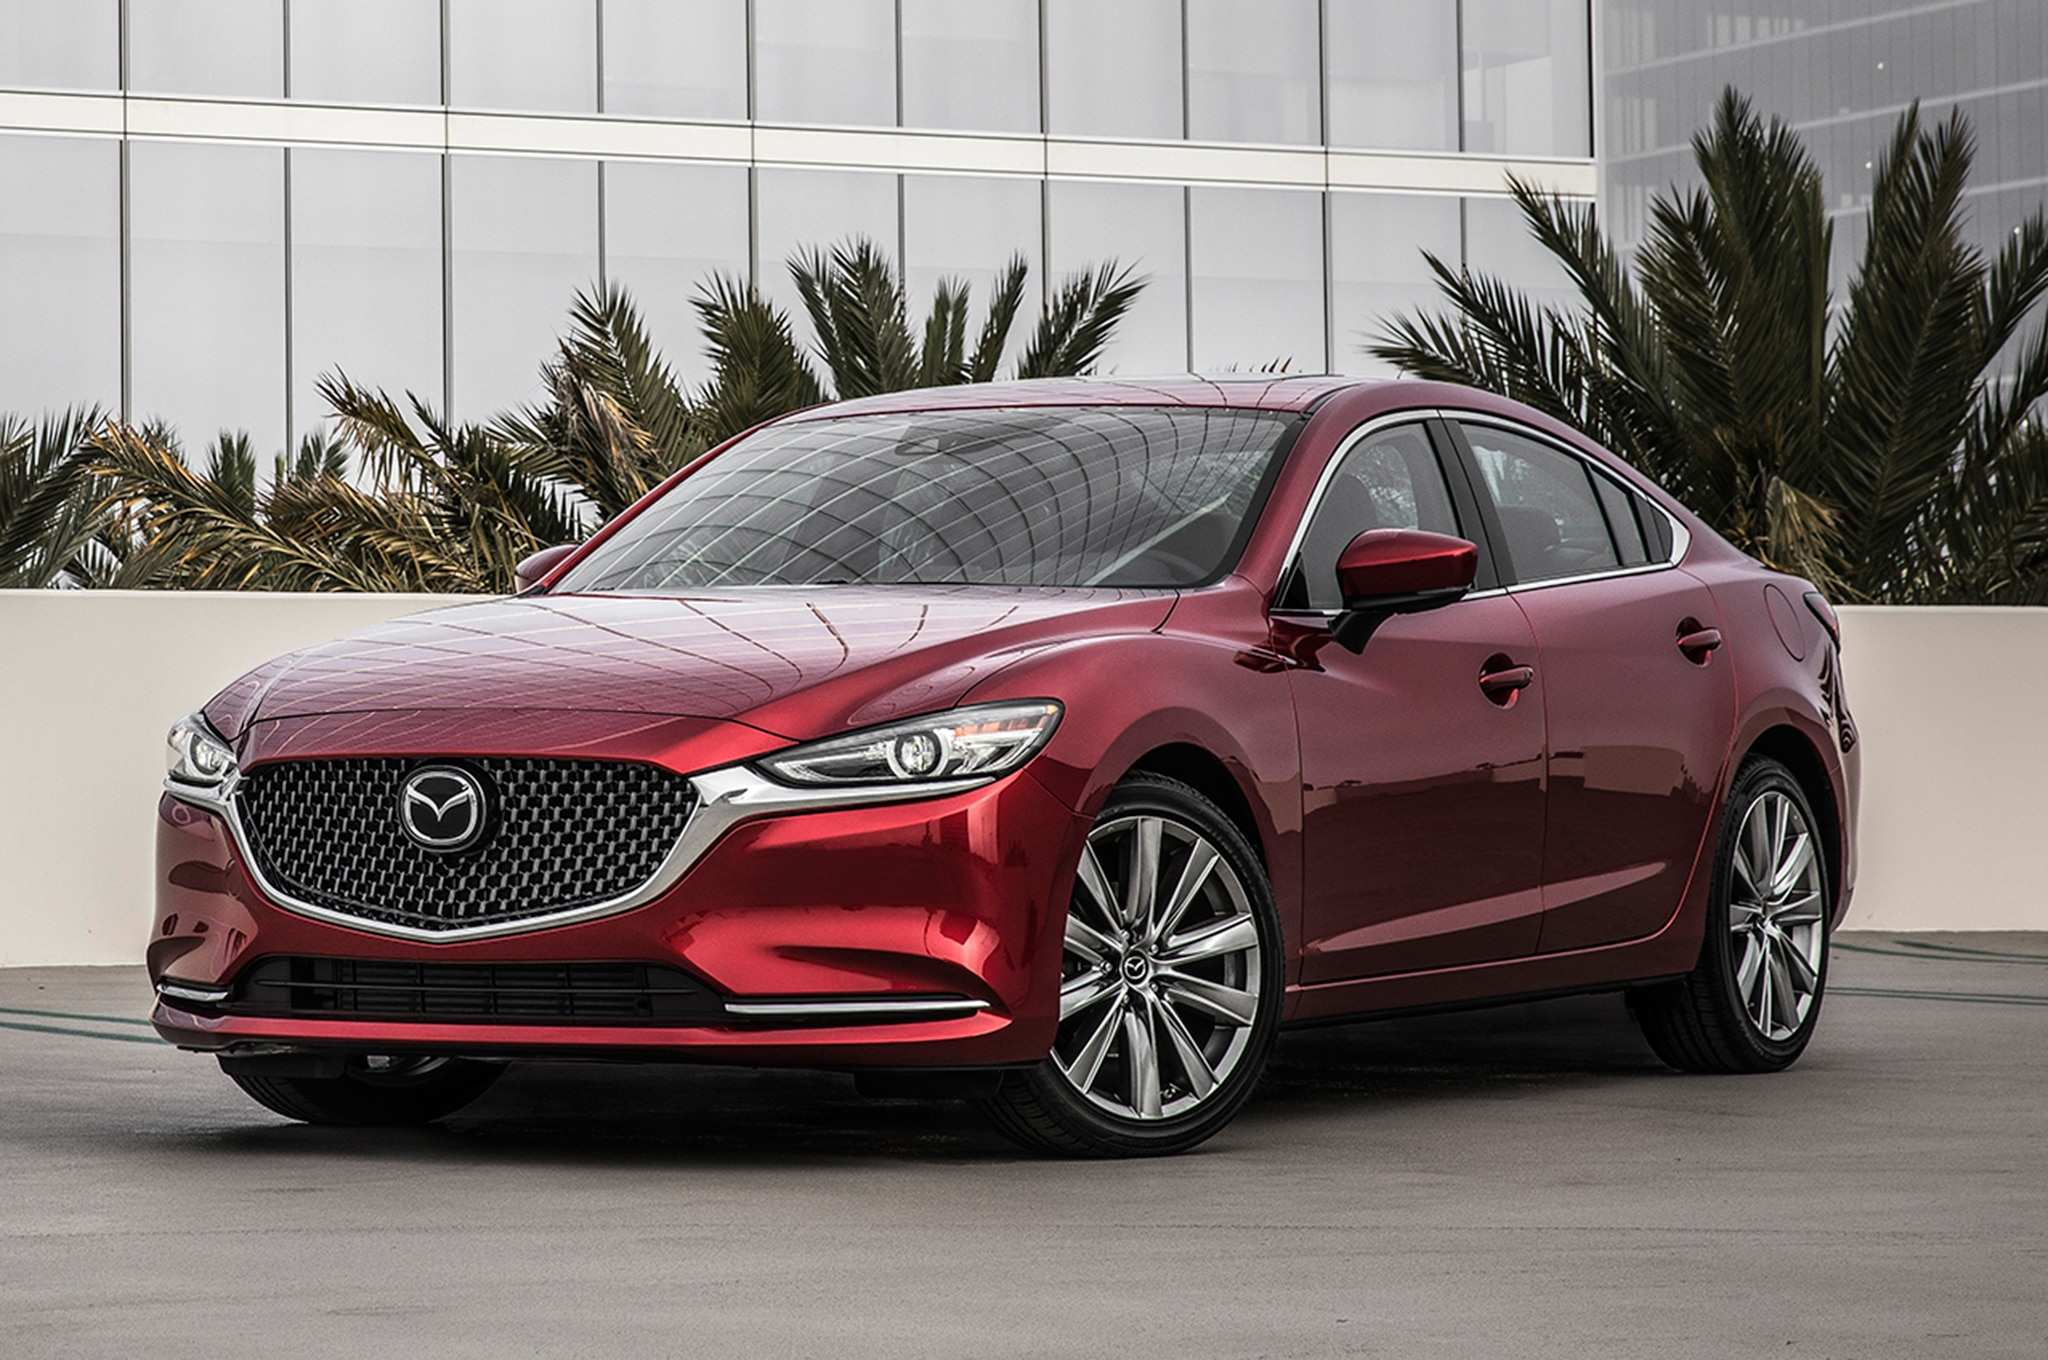 46 All New 2019 Mazda 6s Wallpaper